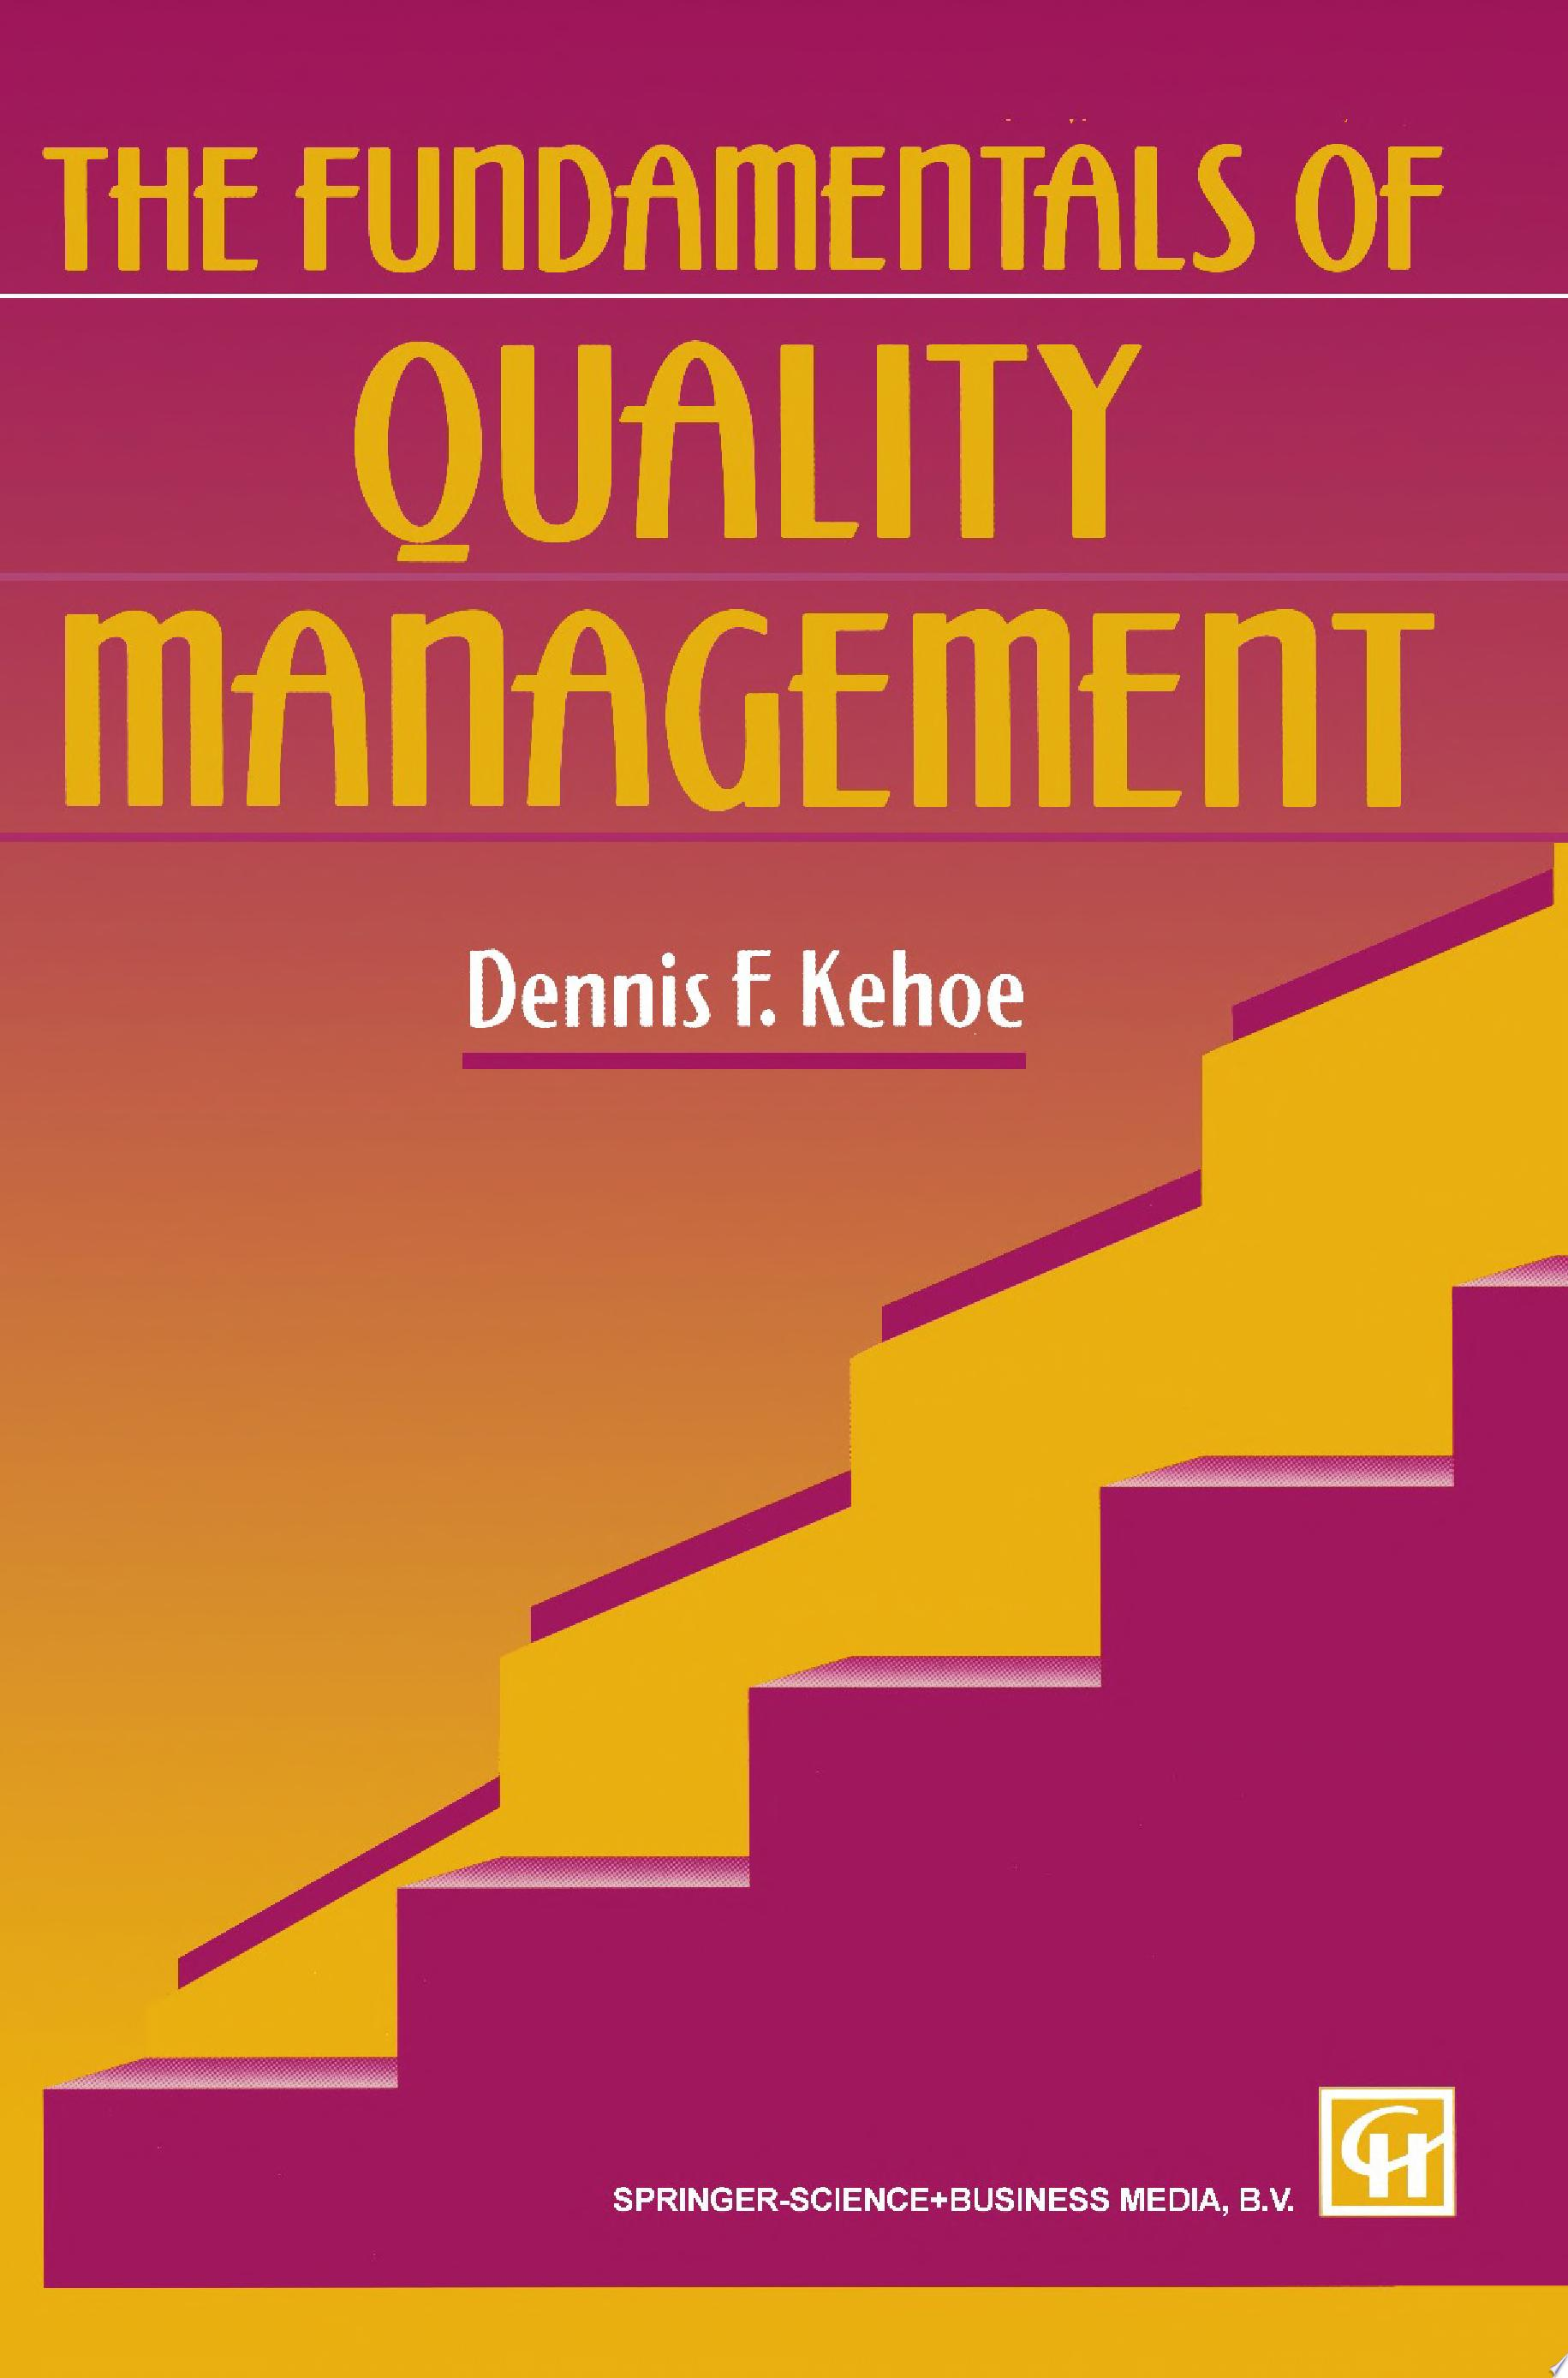 The Fundamentals of Quality Management